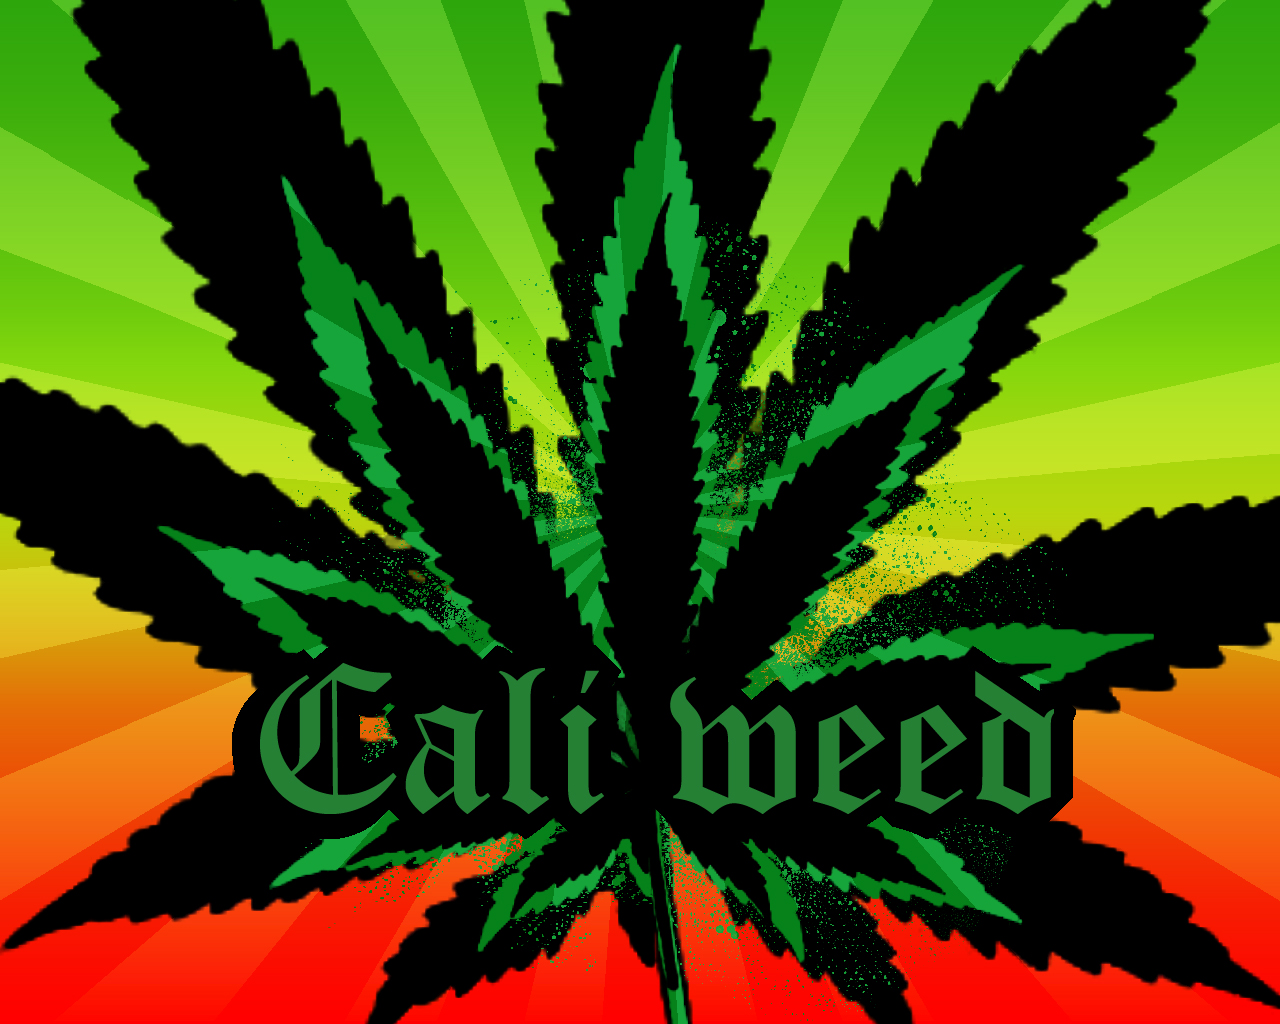 Wallpaper iphone rasta - Trippy Rasta Weed Backgrounds Wallpaper